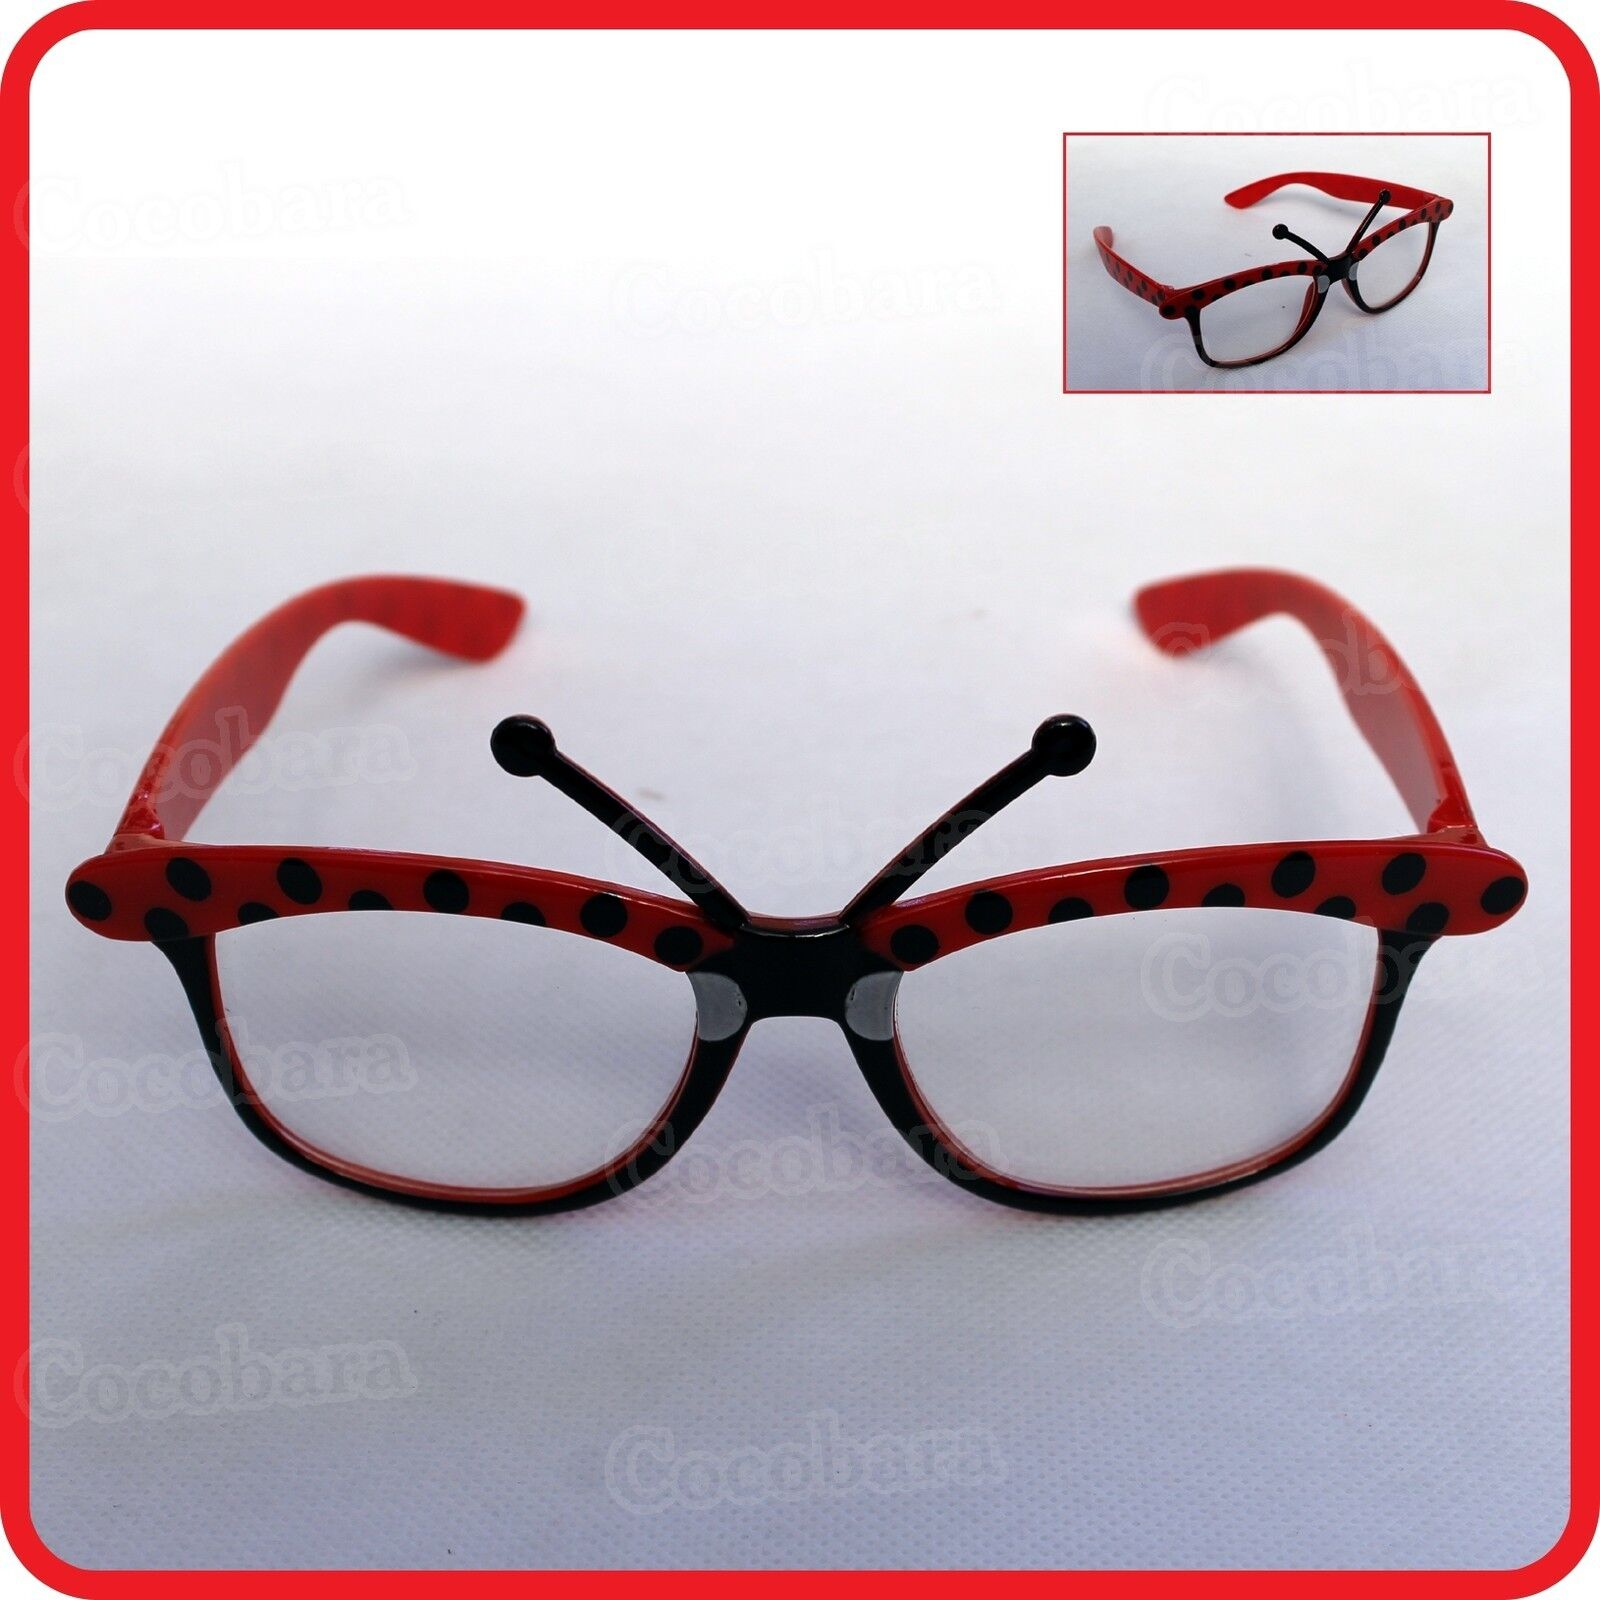 CUTE RED LADYBUG LADYBIRD LADY BEETLE GLASSES-FUNNY COSTUME-DRESS UP-PARTY